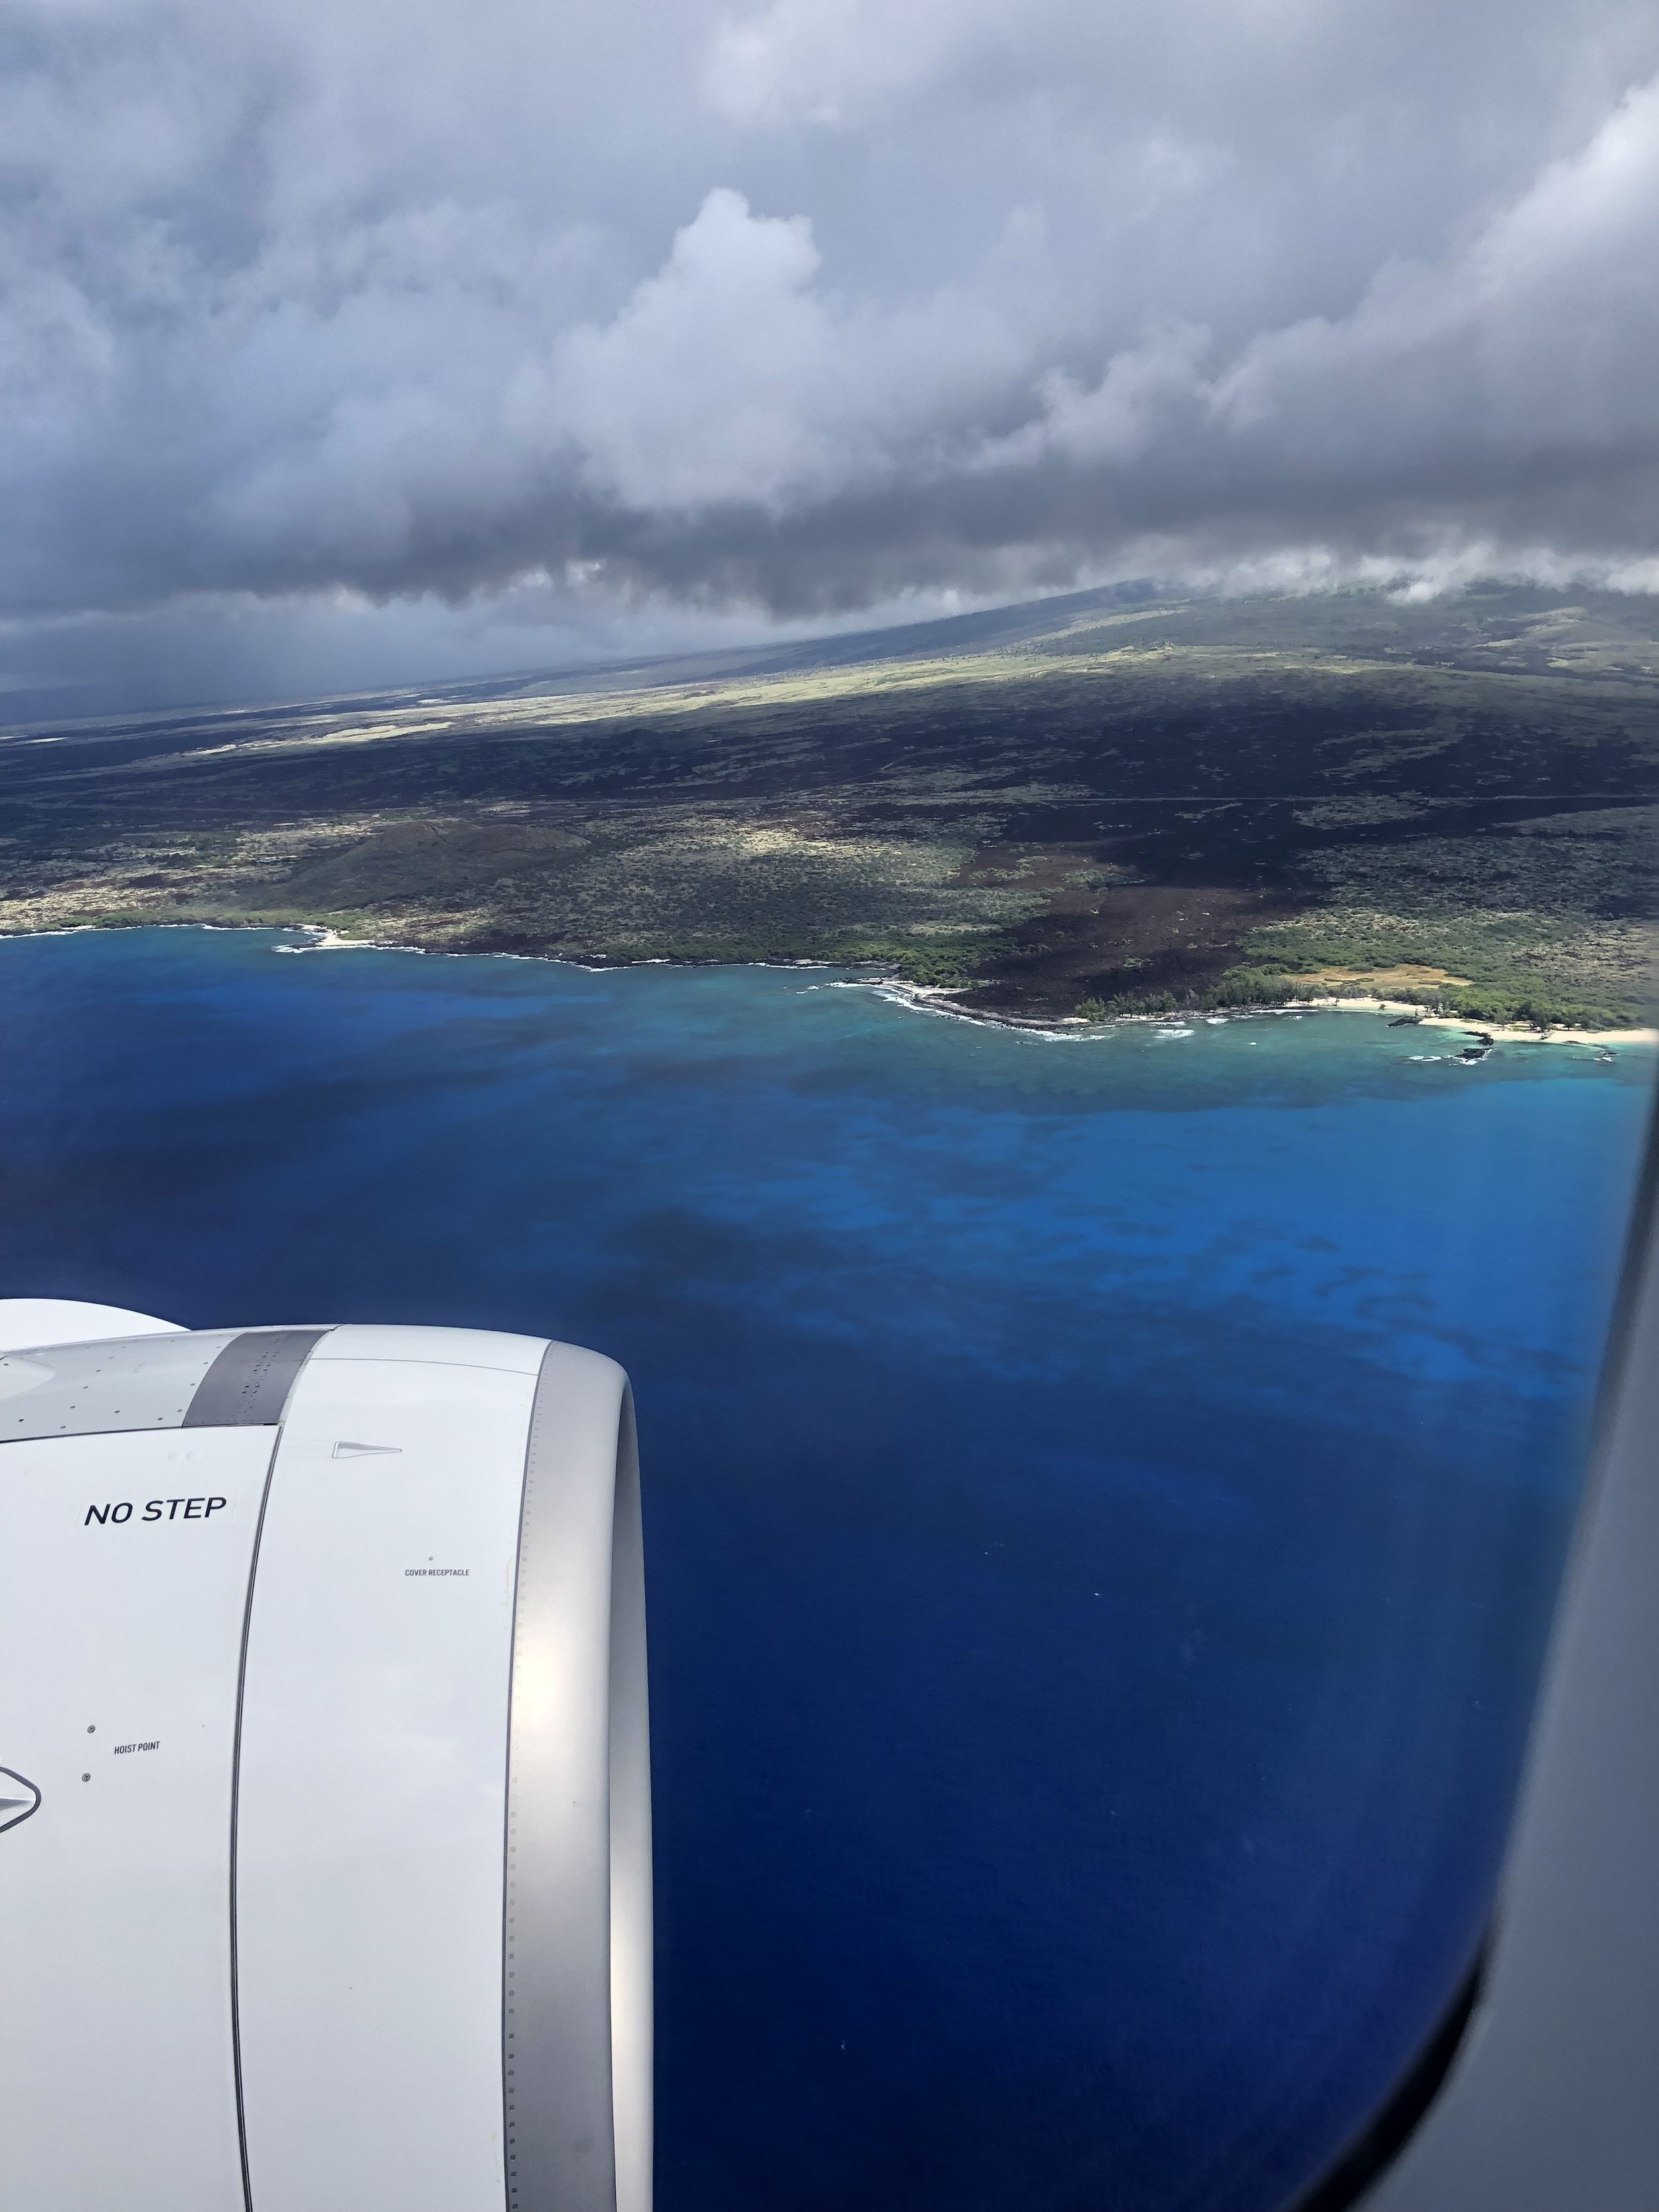 My first glance at Hawaii's largest plot of land. October, 2018.